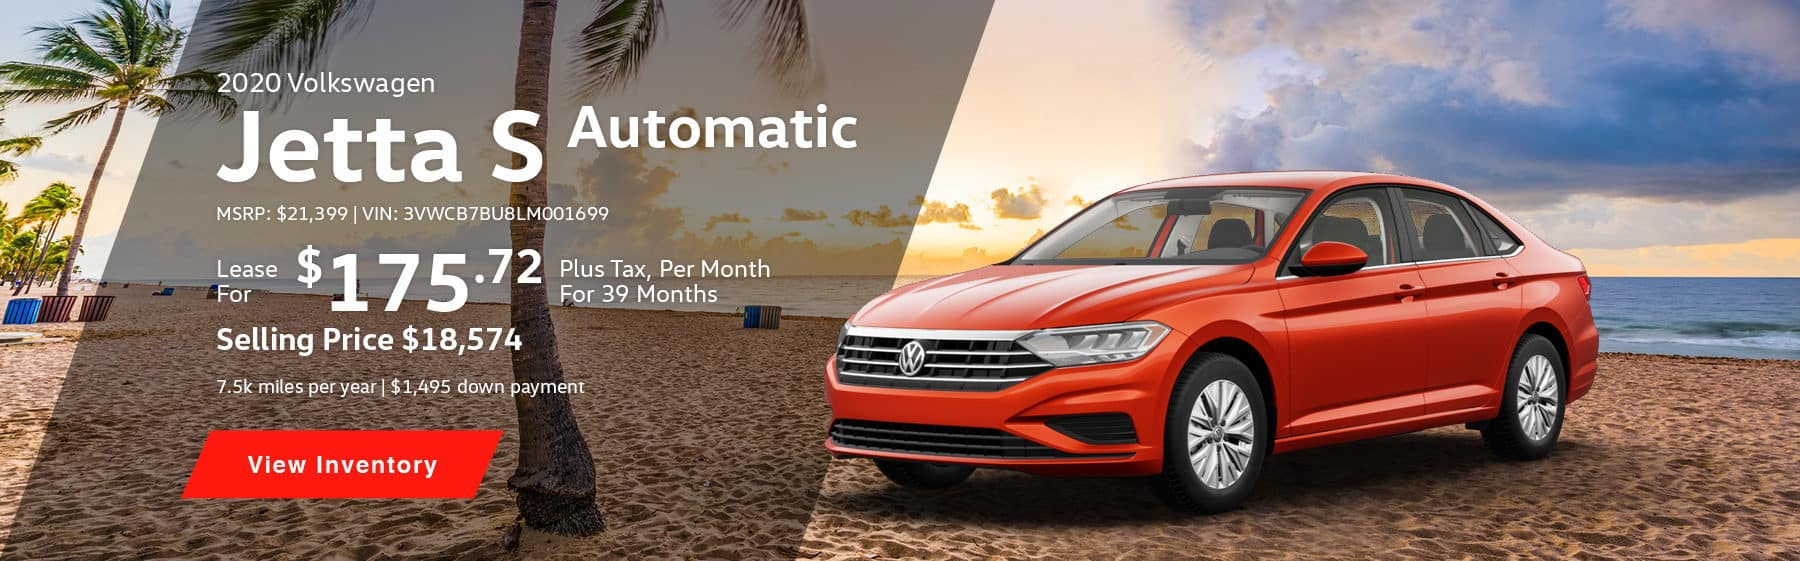 Lease the 2020 Jetta S Automatic for $175.72 per month, plus tax for 39 months.